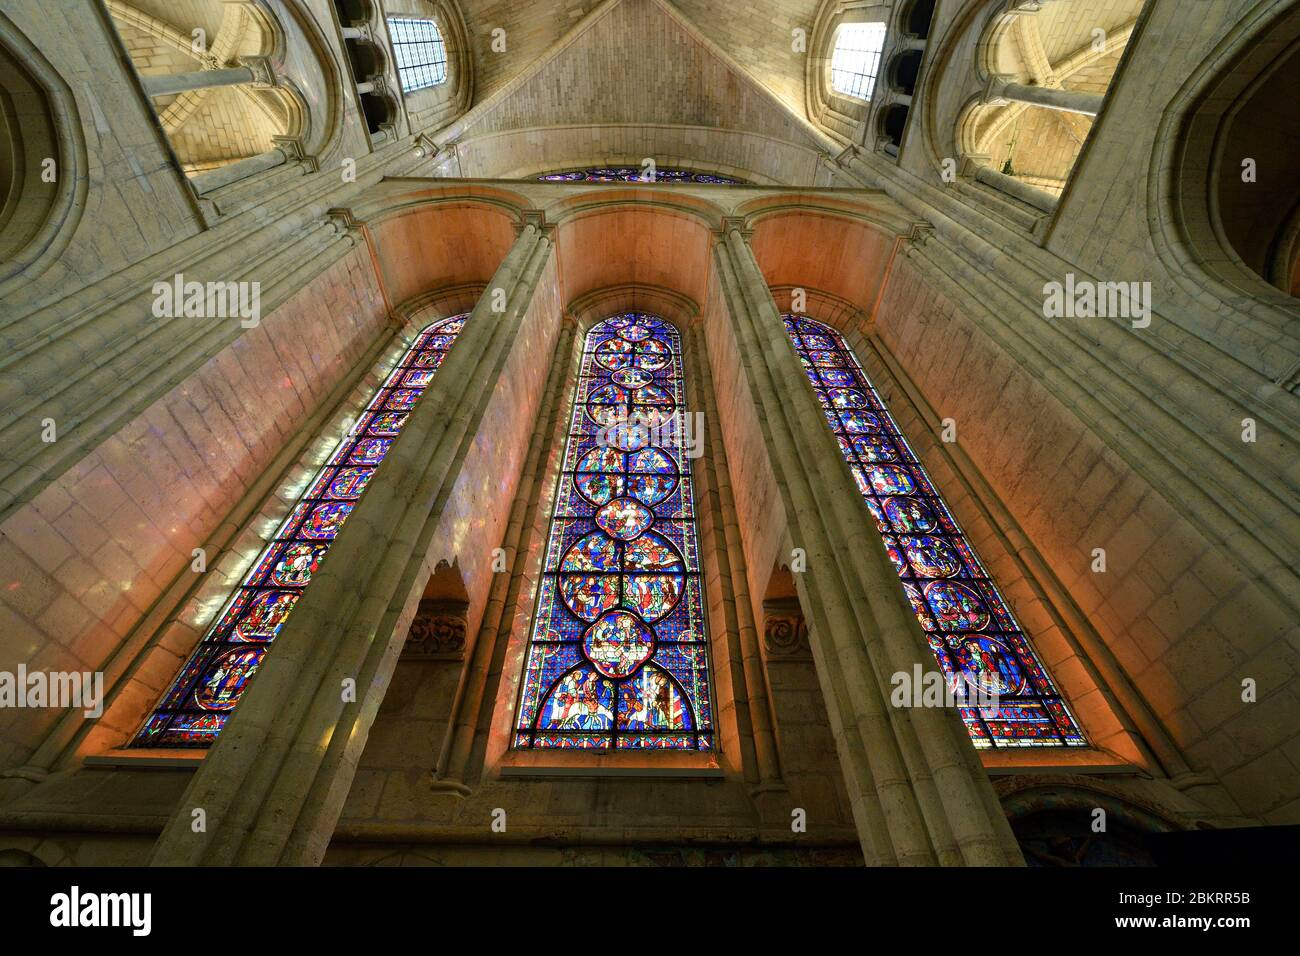 France, Aisne, Laon, the Upper town, Notre-Dame de Laon cathedral, Gothic architecture Stock Photo